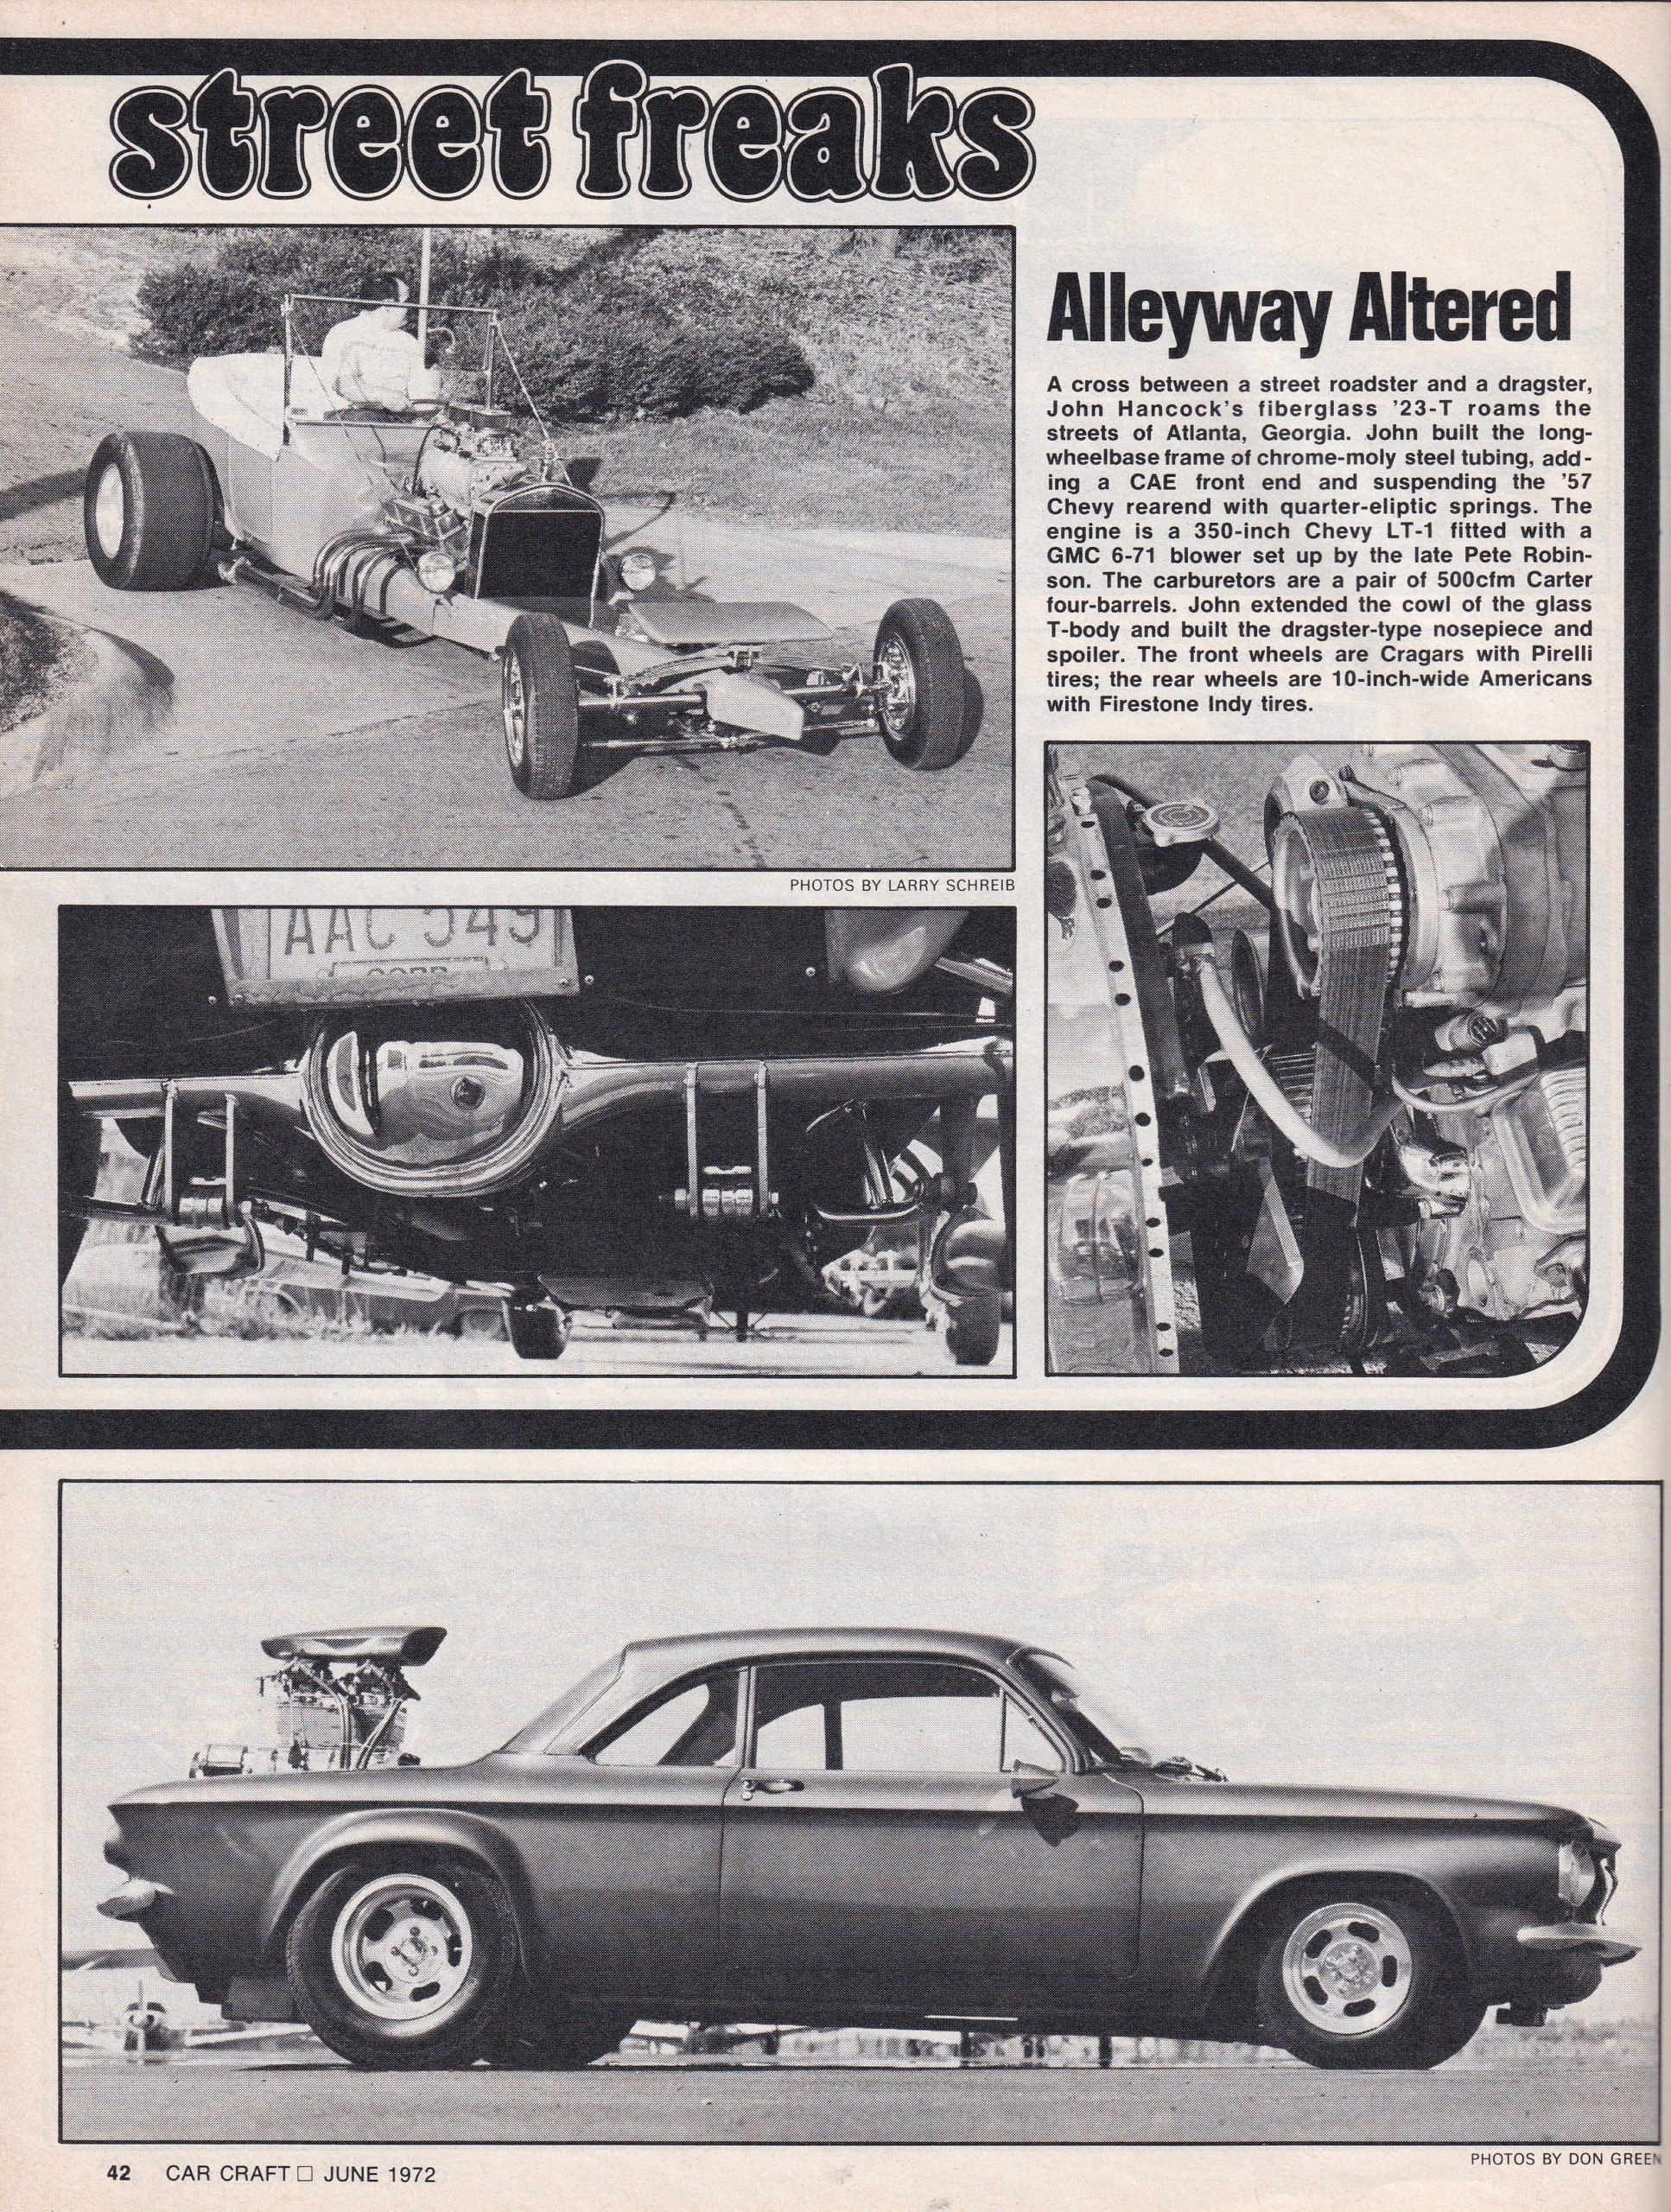 Street Freaks section from June 1972 issue of Car Craft, page 4.